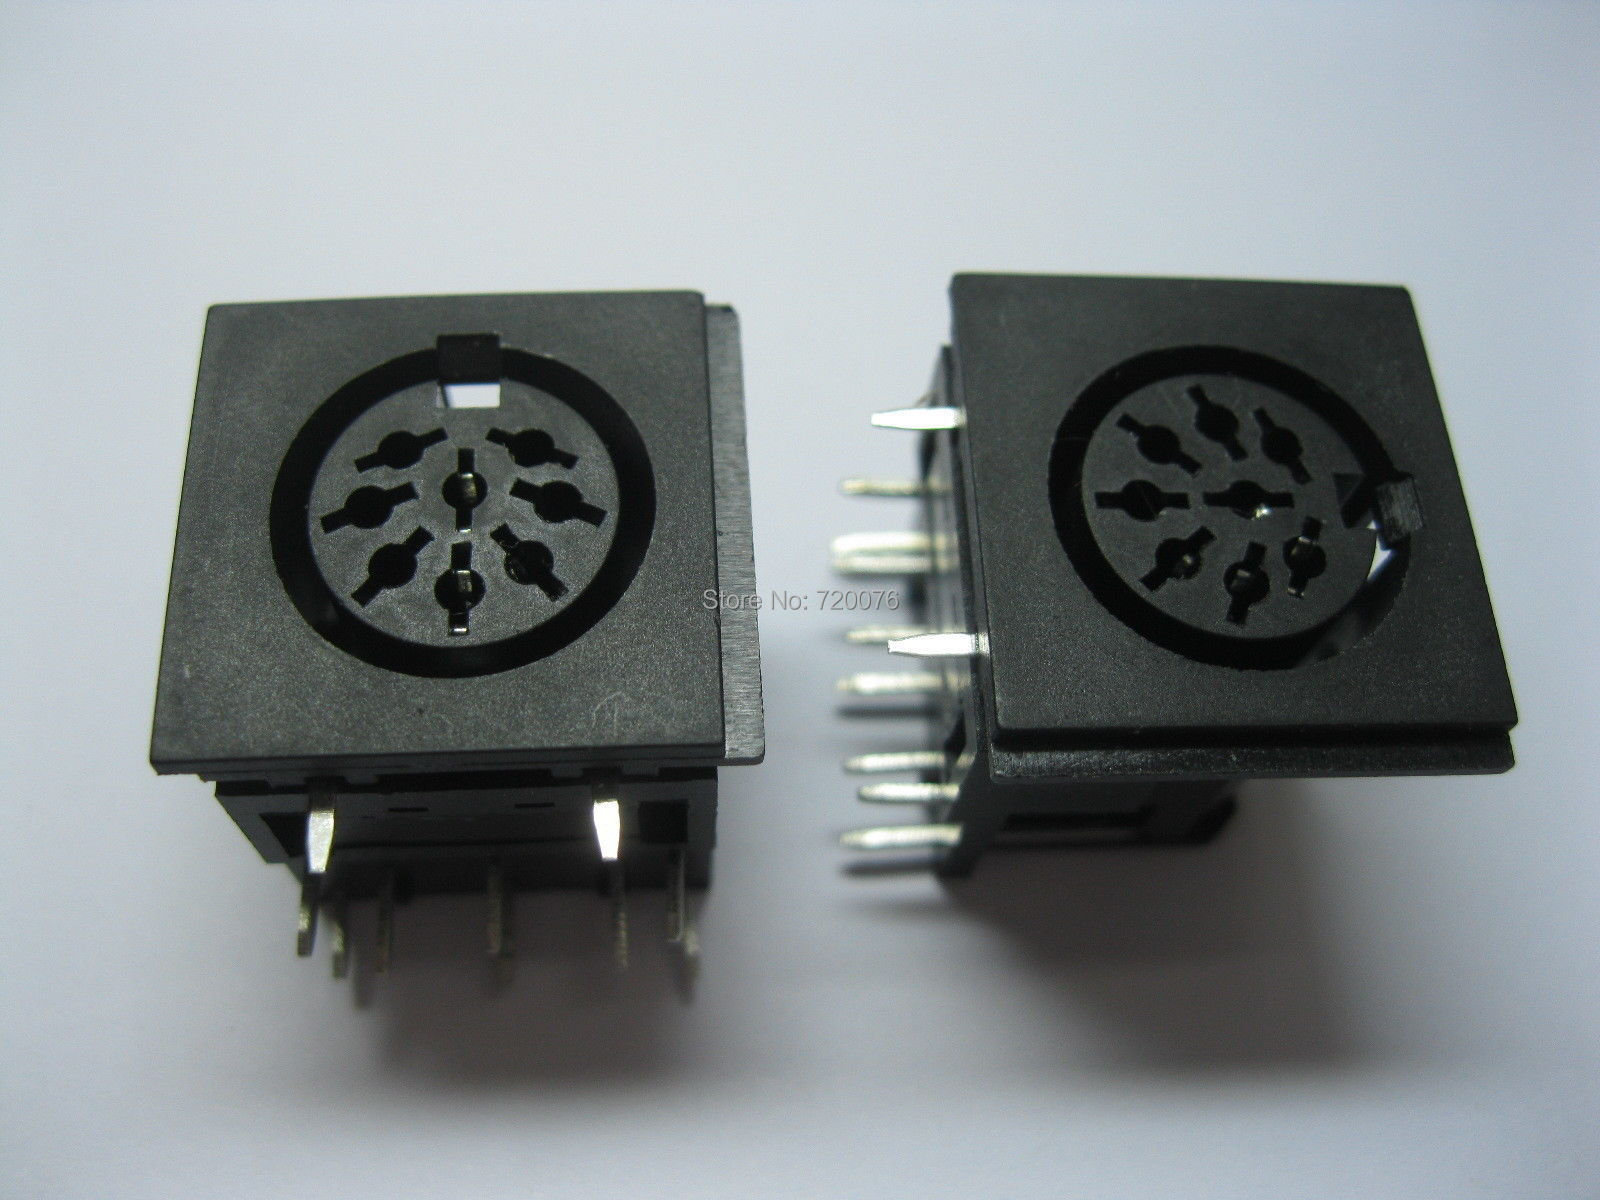 30 x Circular <font><b>DIN</b></font> Jack Female <font><b>8pin</b></font> PCB Mount Connector image